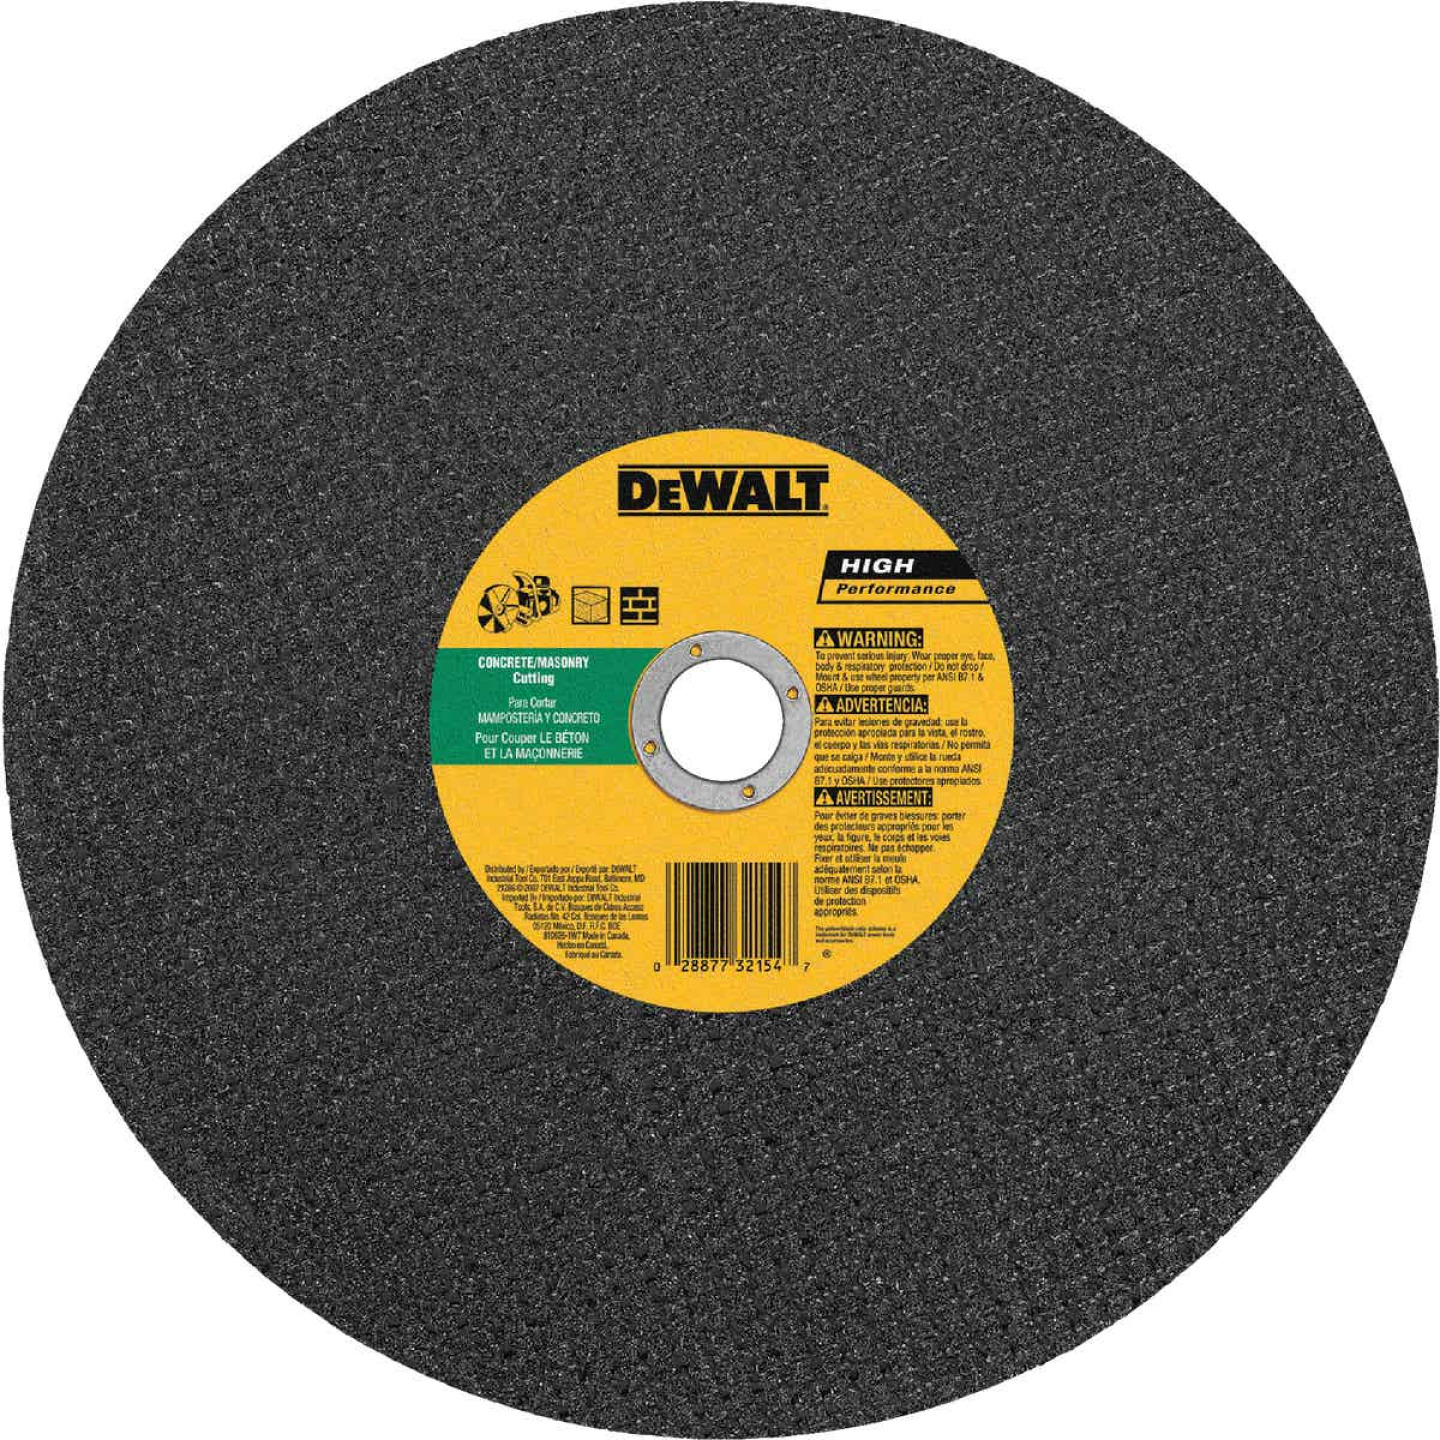 DeWalt HP Type 1 14 In. x 1/8 In. x 20 mm Masonry Cut-Off Wheel Image 1